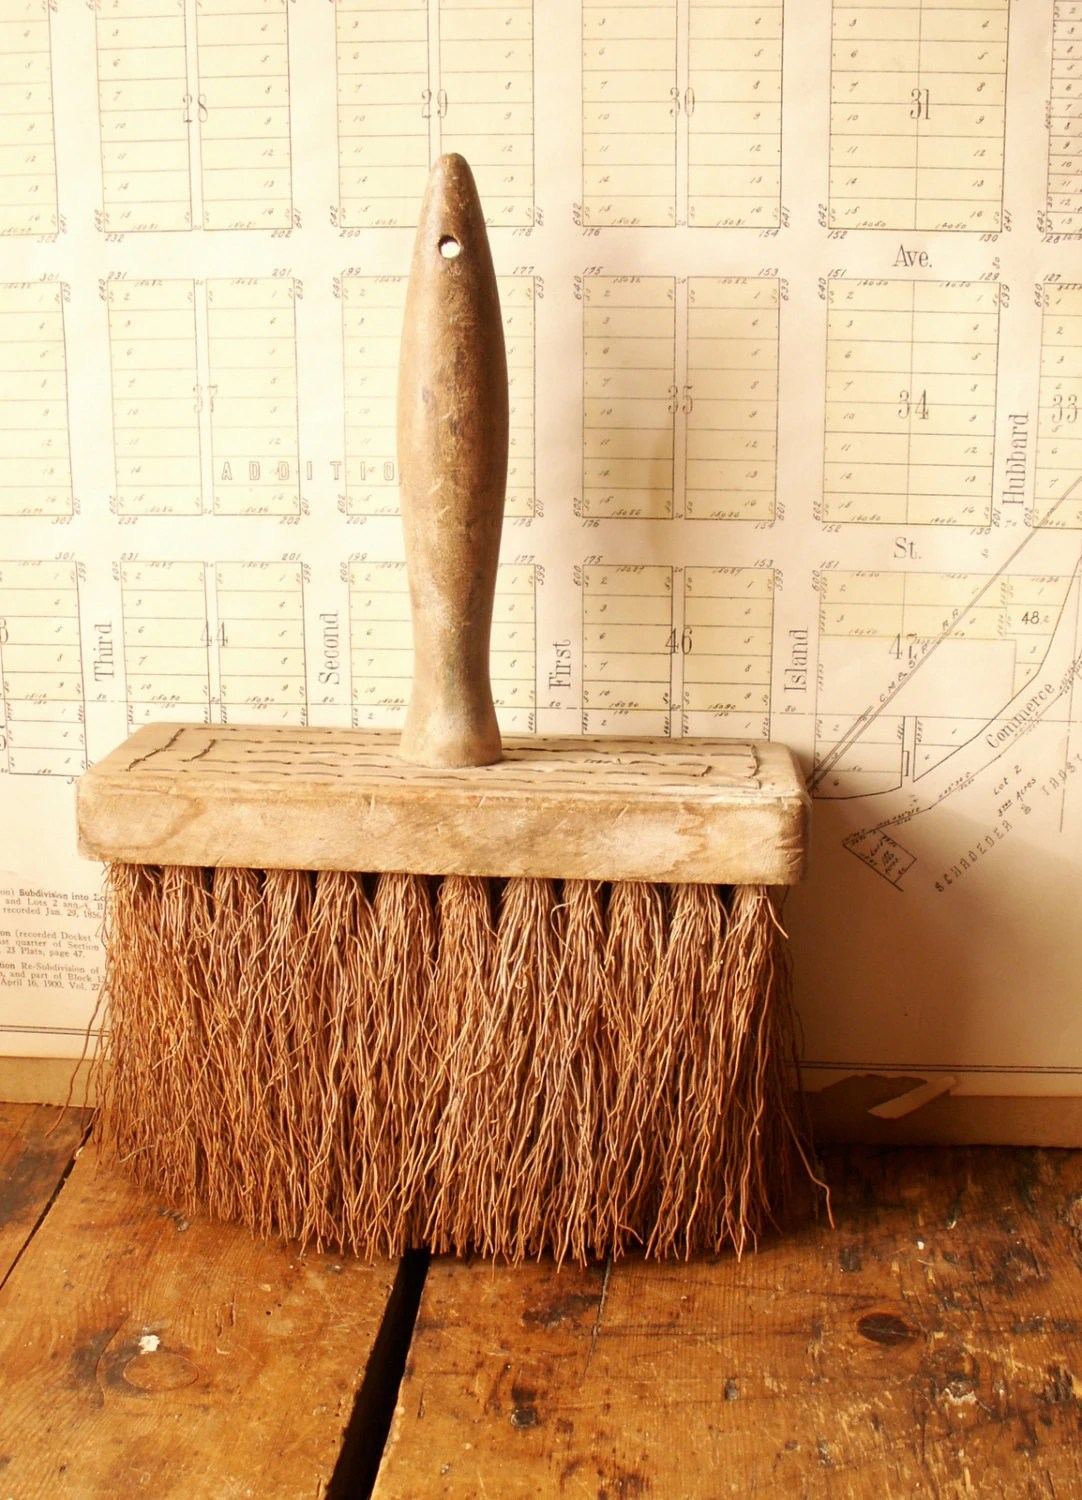 Large Vintage Wallpaper Brush - Hand Broom with rough bristles